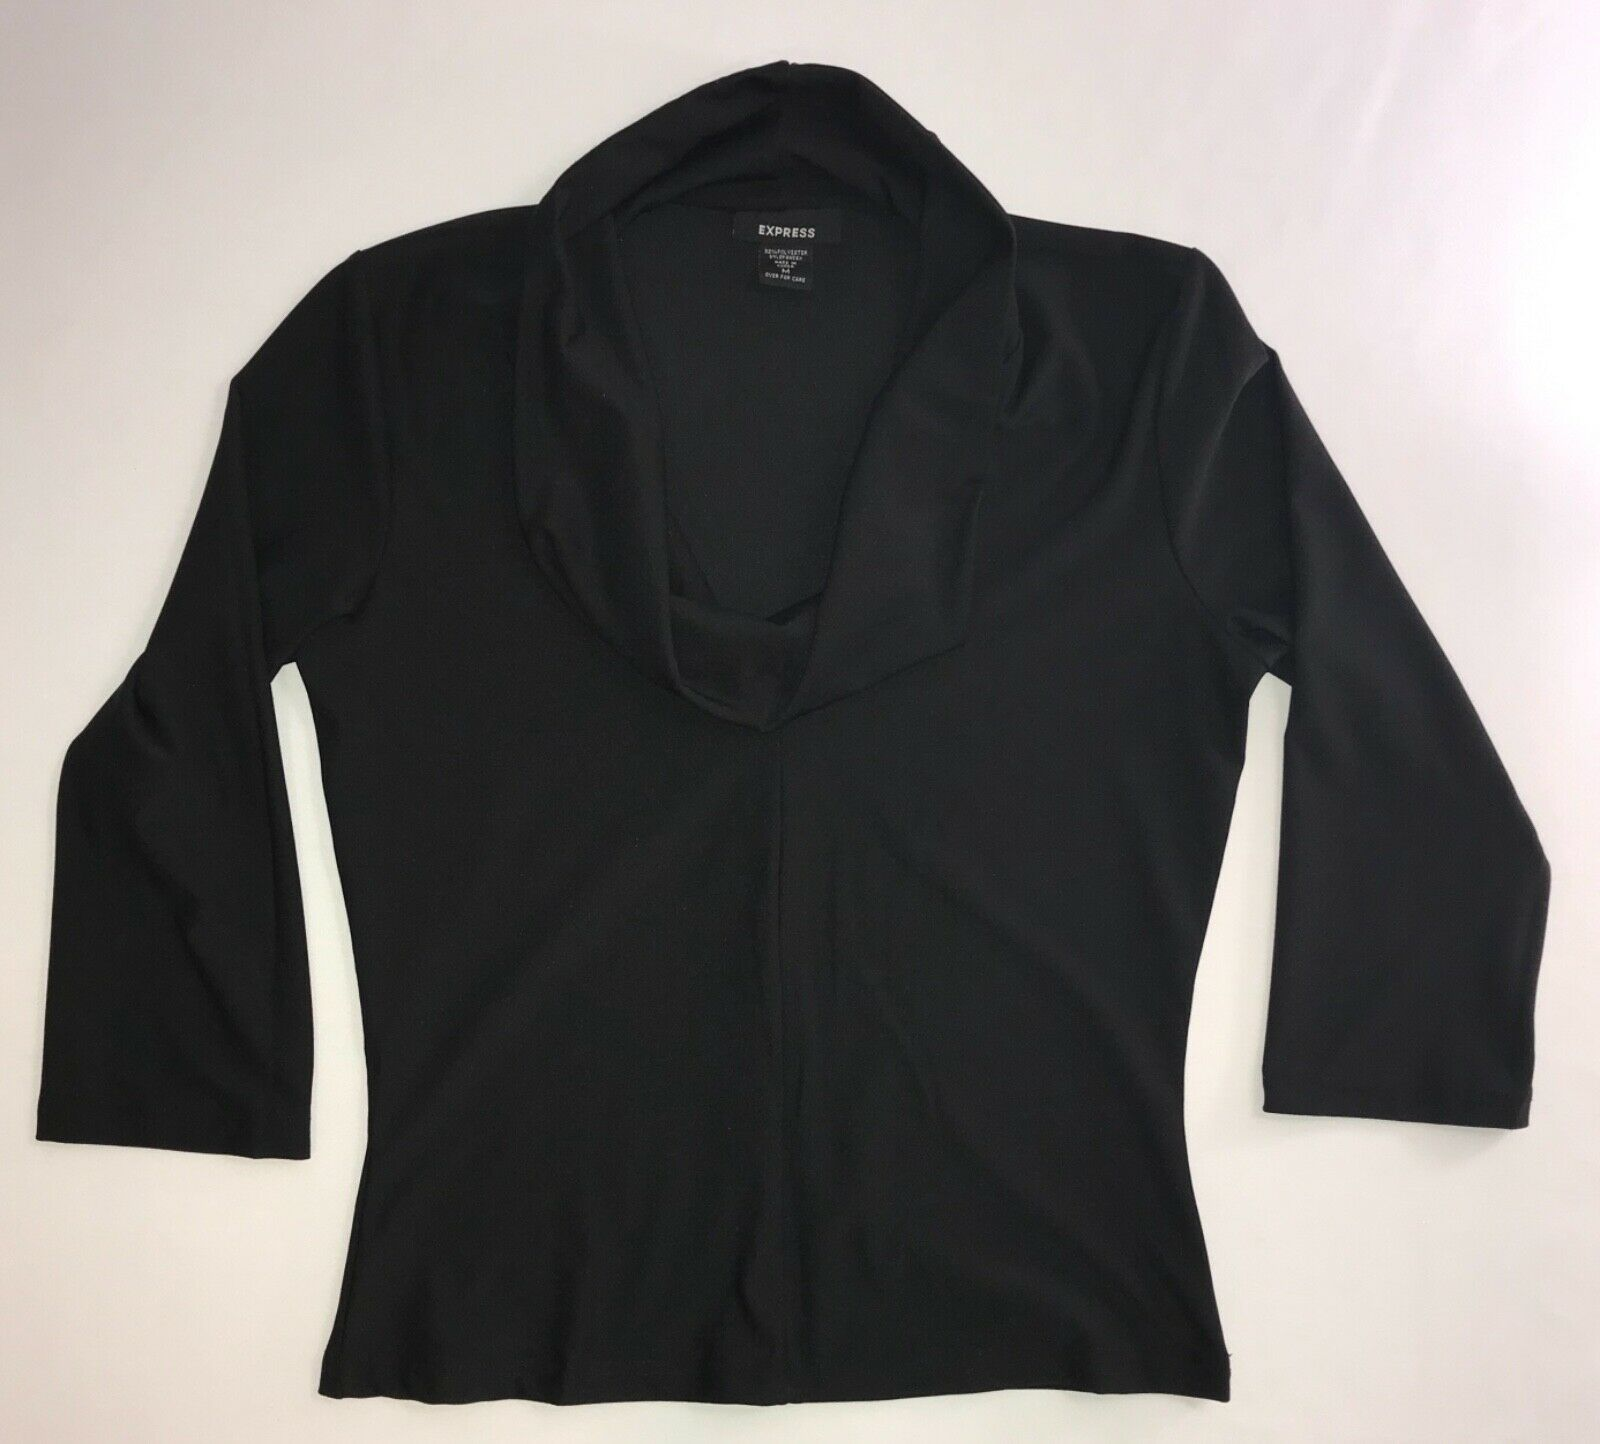 Primary image for Cowl Neck Blouse with 3/4 Sleeves in Black by Express in Medium